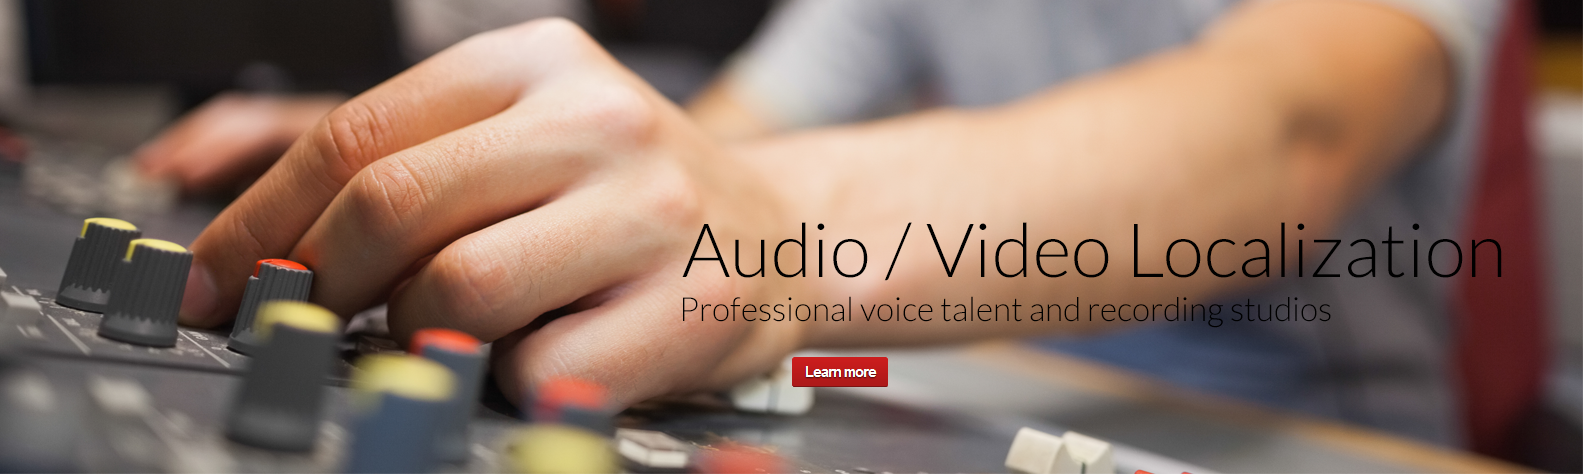 05-gpi-audio-video-localization